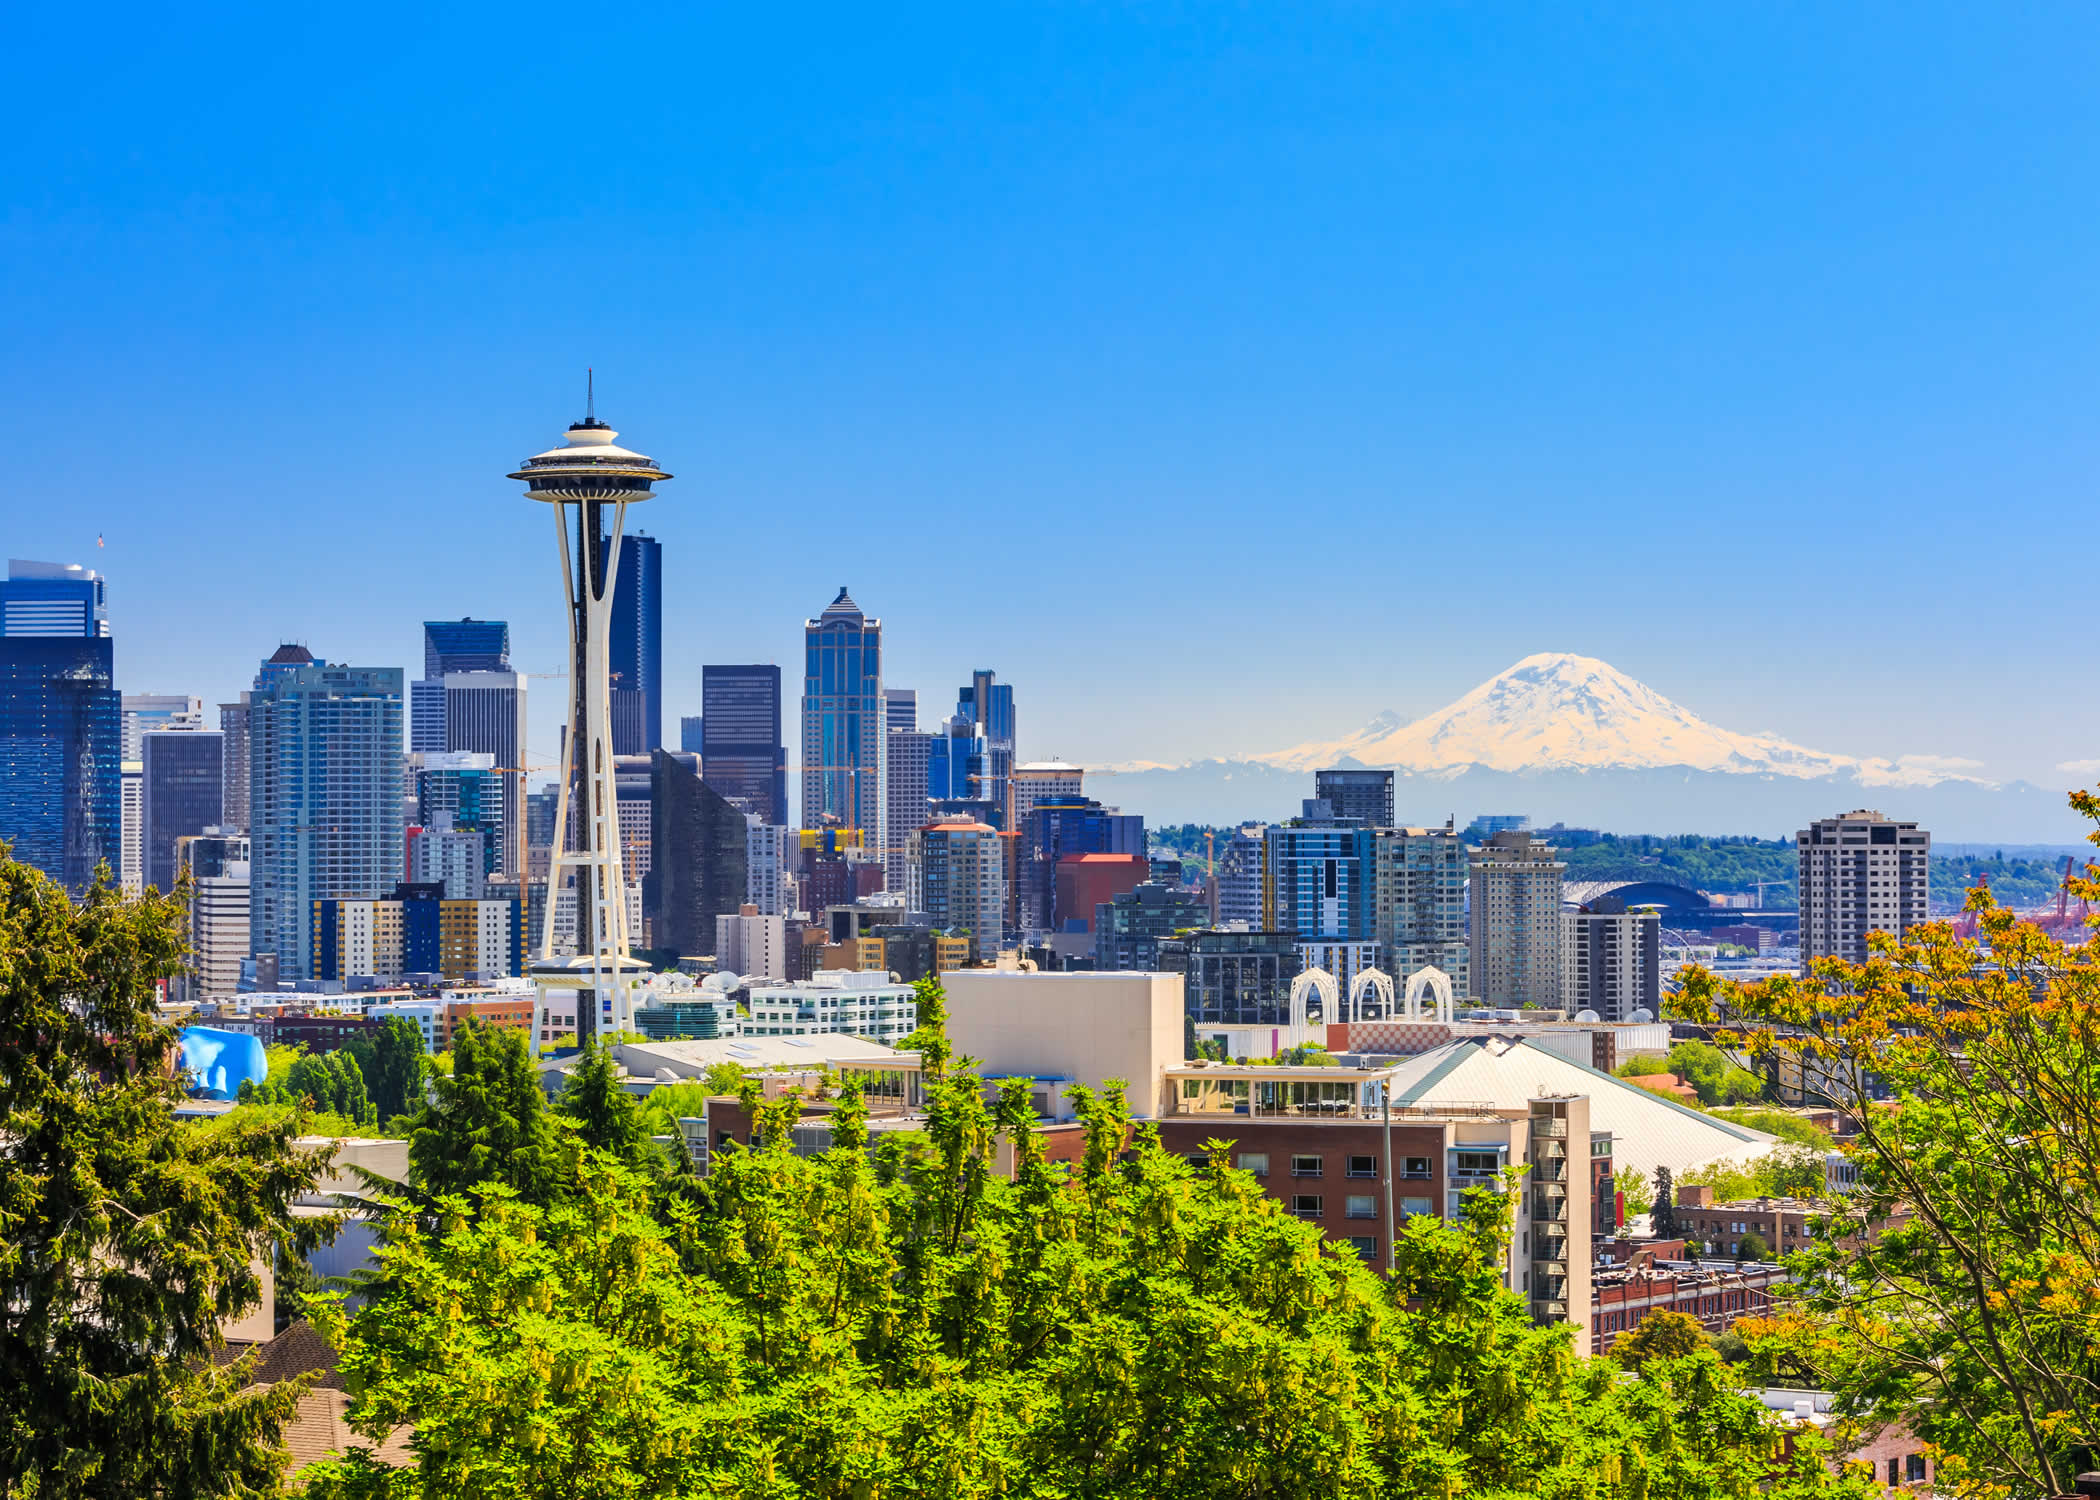 September 10, 2014 - OFCCP's Veteran and Disability Regulations, Government Contractor Executive Orders, and the New Data Compensation Collection Tool - Seattle, Washington